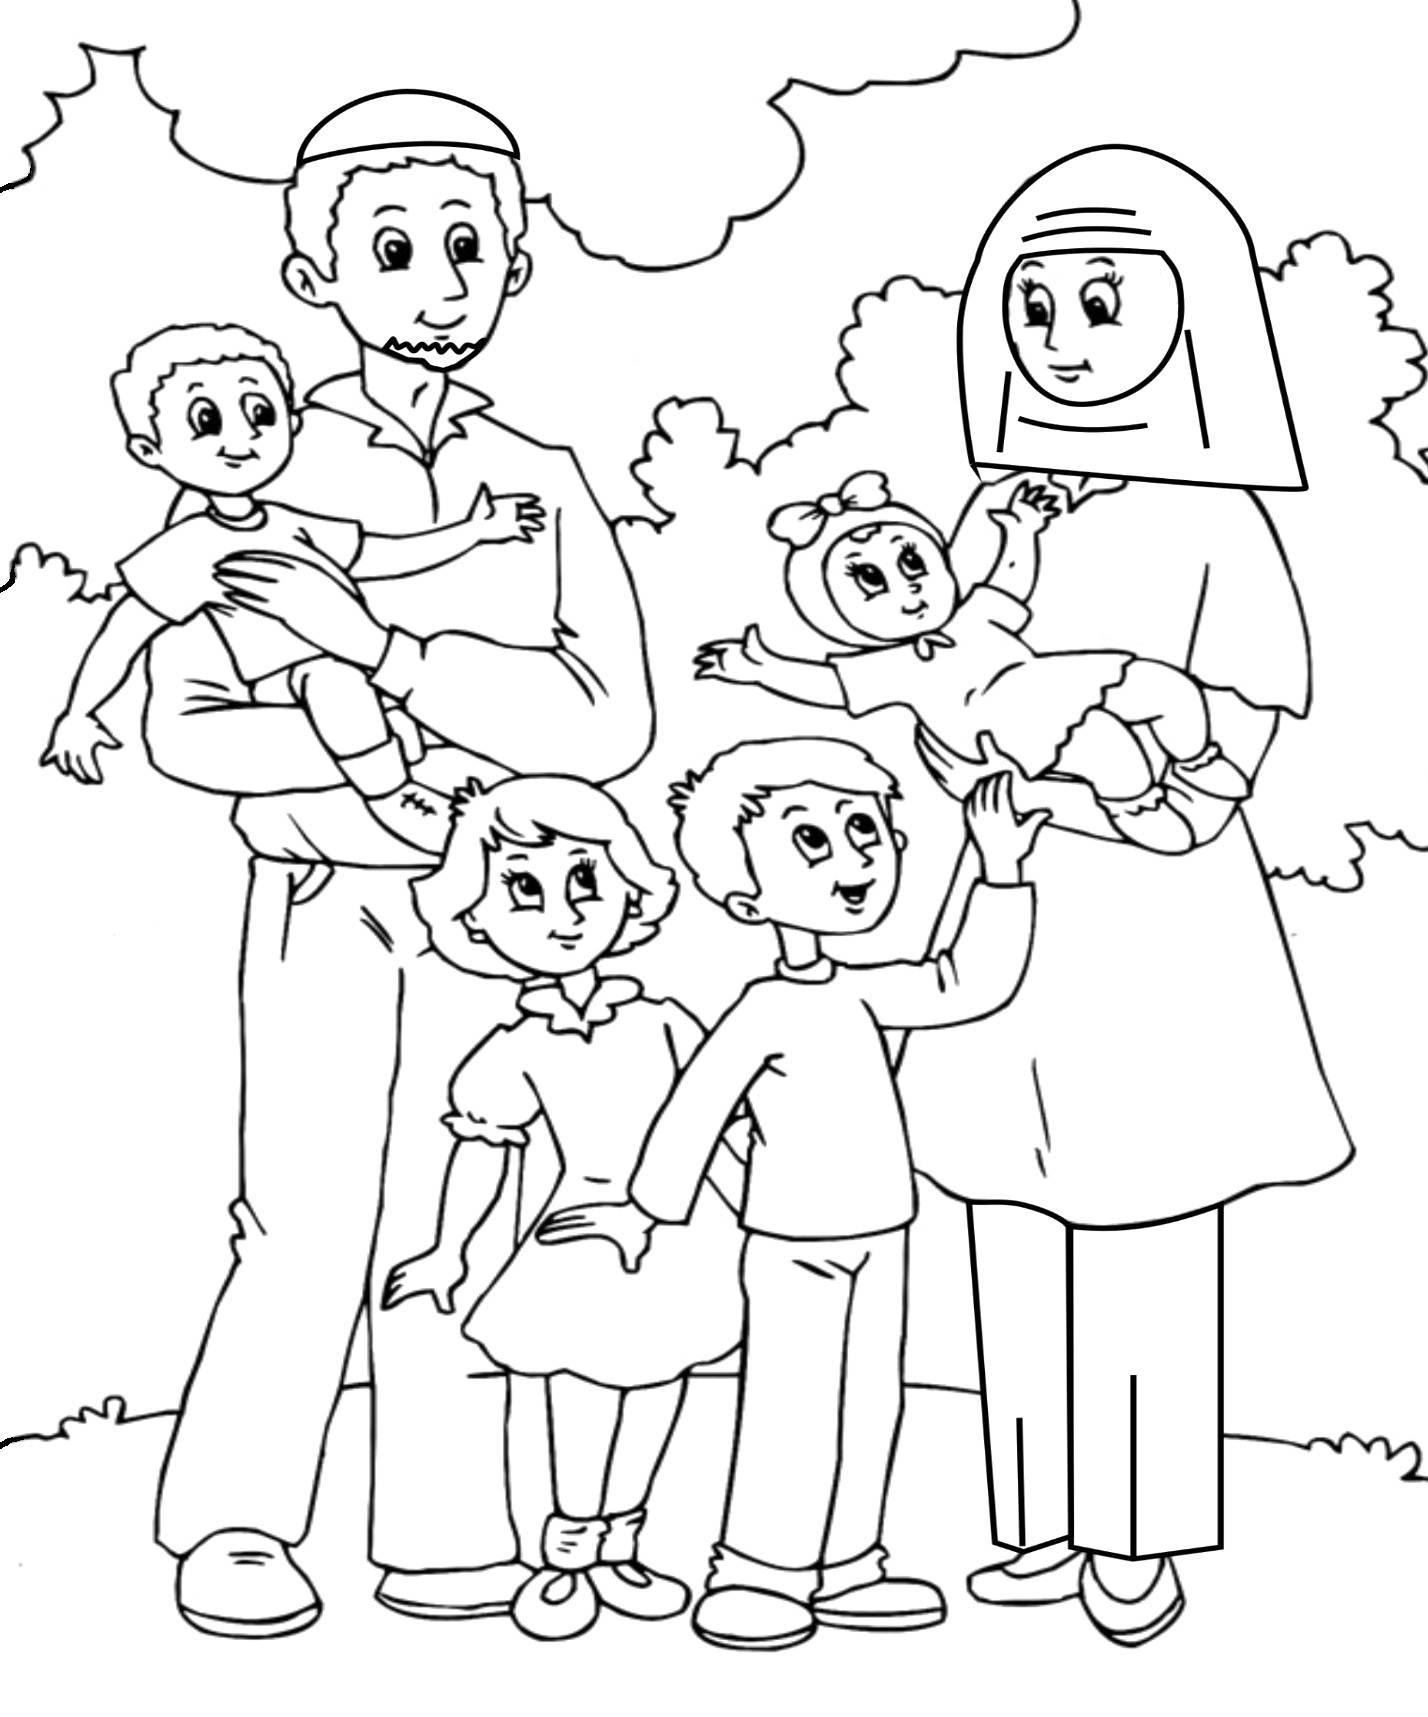 family coloring sheets ma grande famille posant ensemble livre de coloriage coloring sheets family